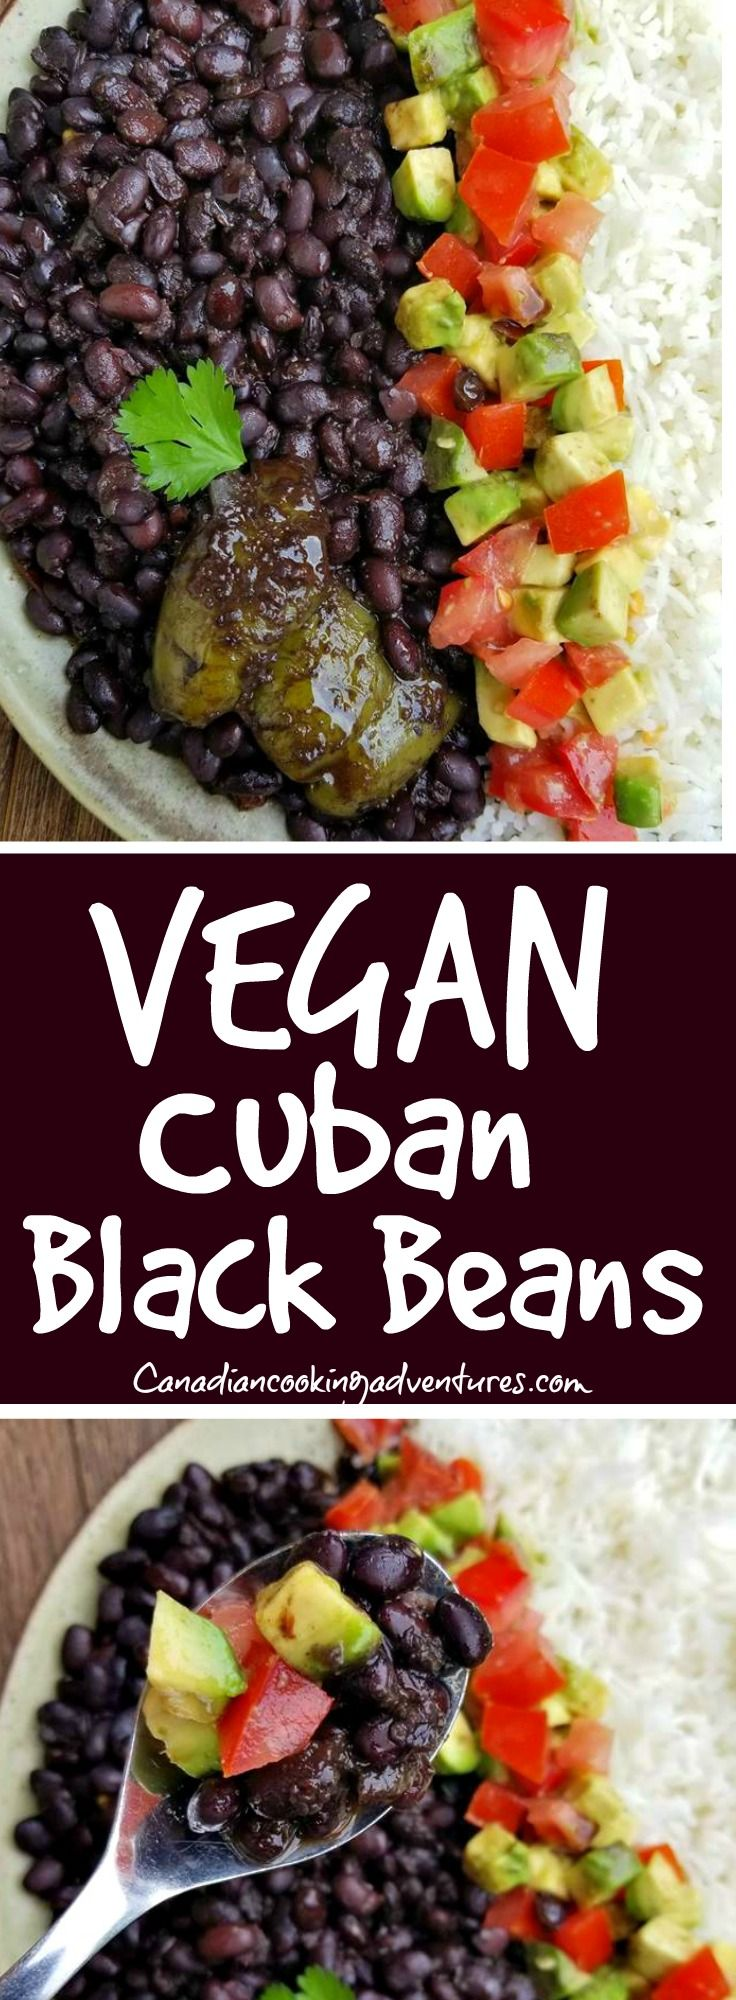 Vegan Cuban Black Beans In 2019 Plant Based Dinner